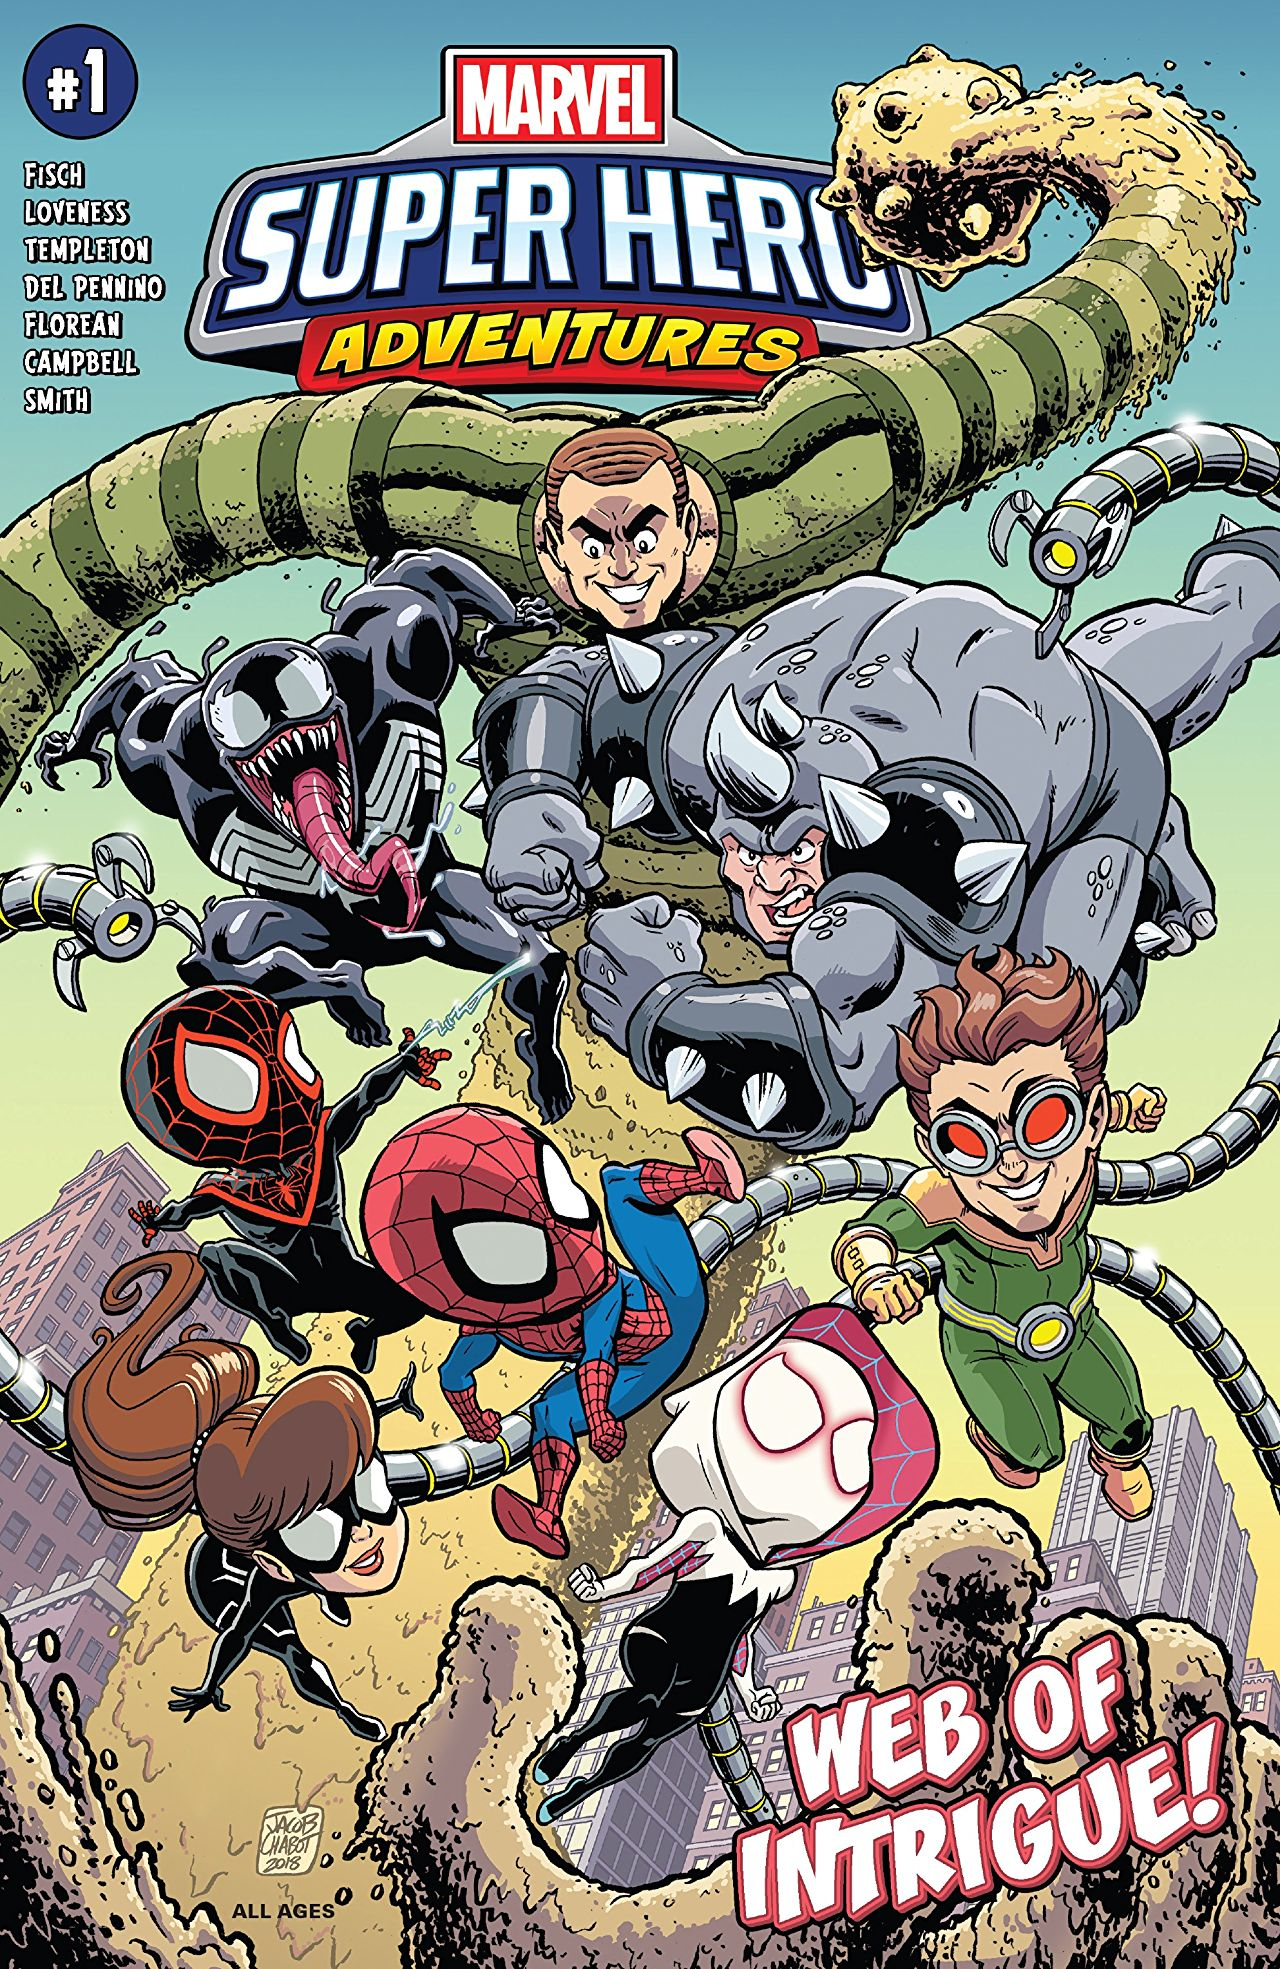 Marvel Super Hero Adventures: Spider-Man - Web of Intrigue Vol 1 1